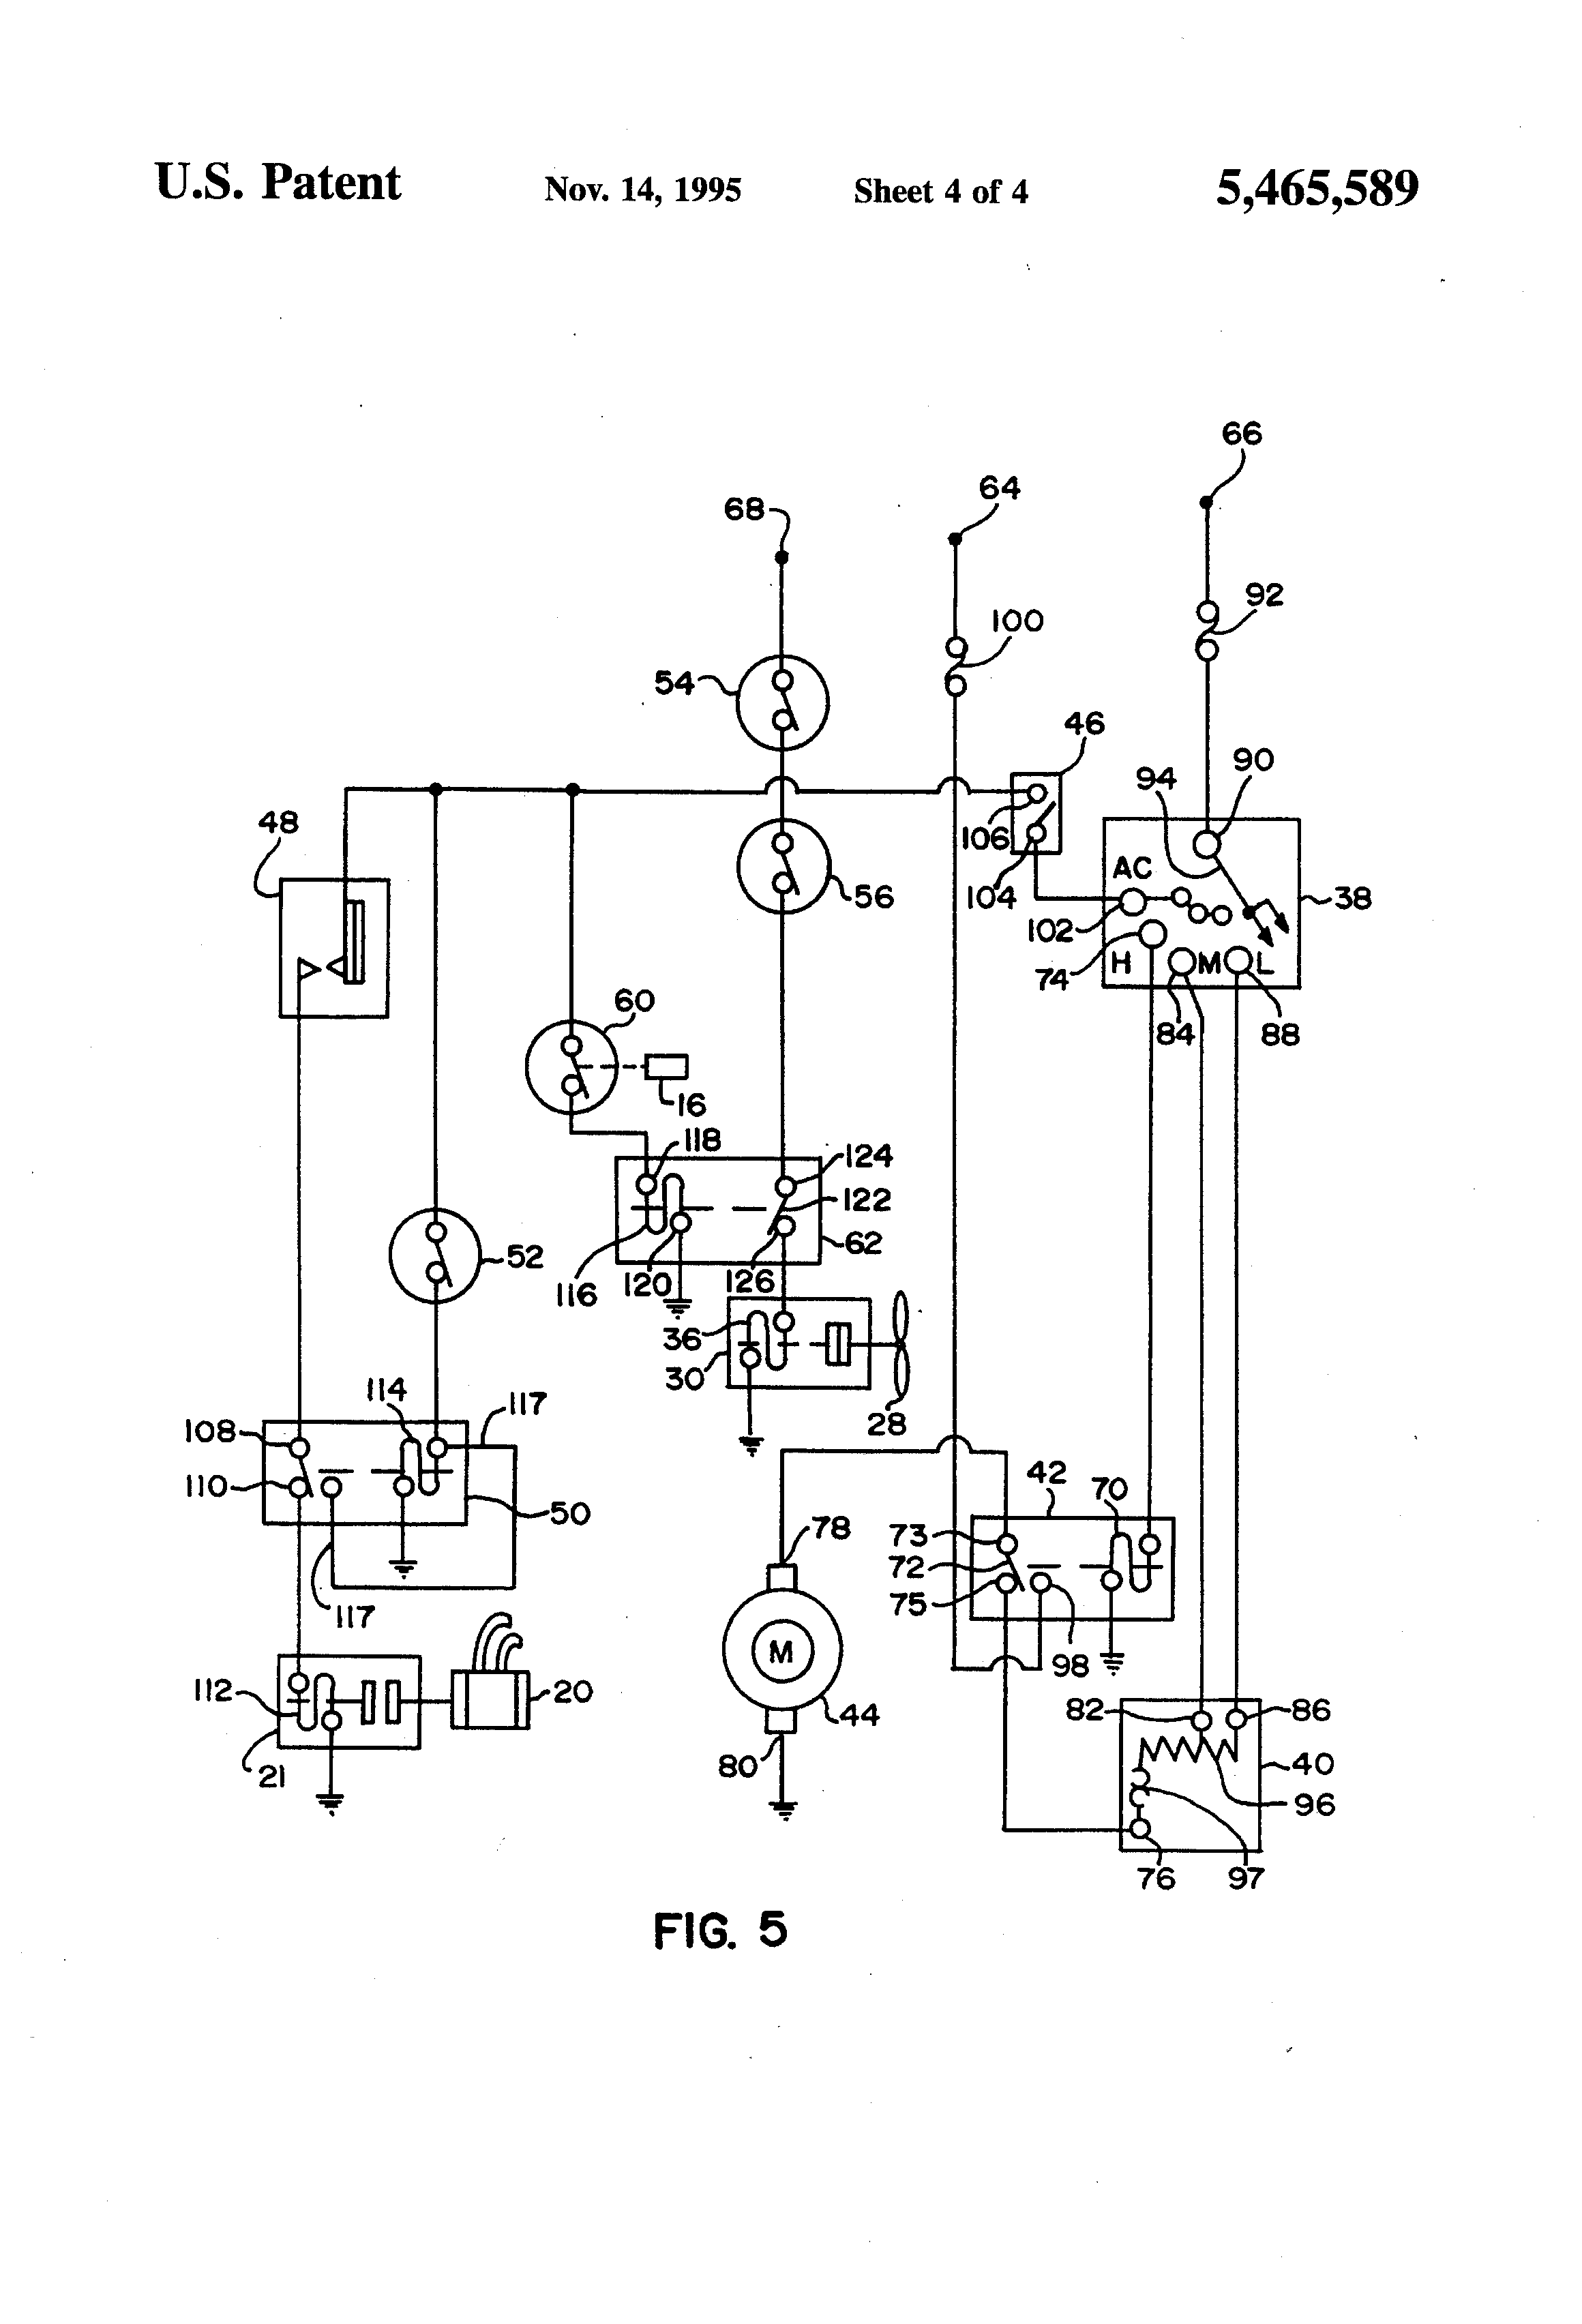 2001 international wiring diagram